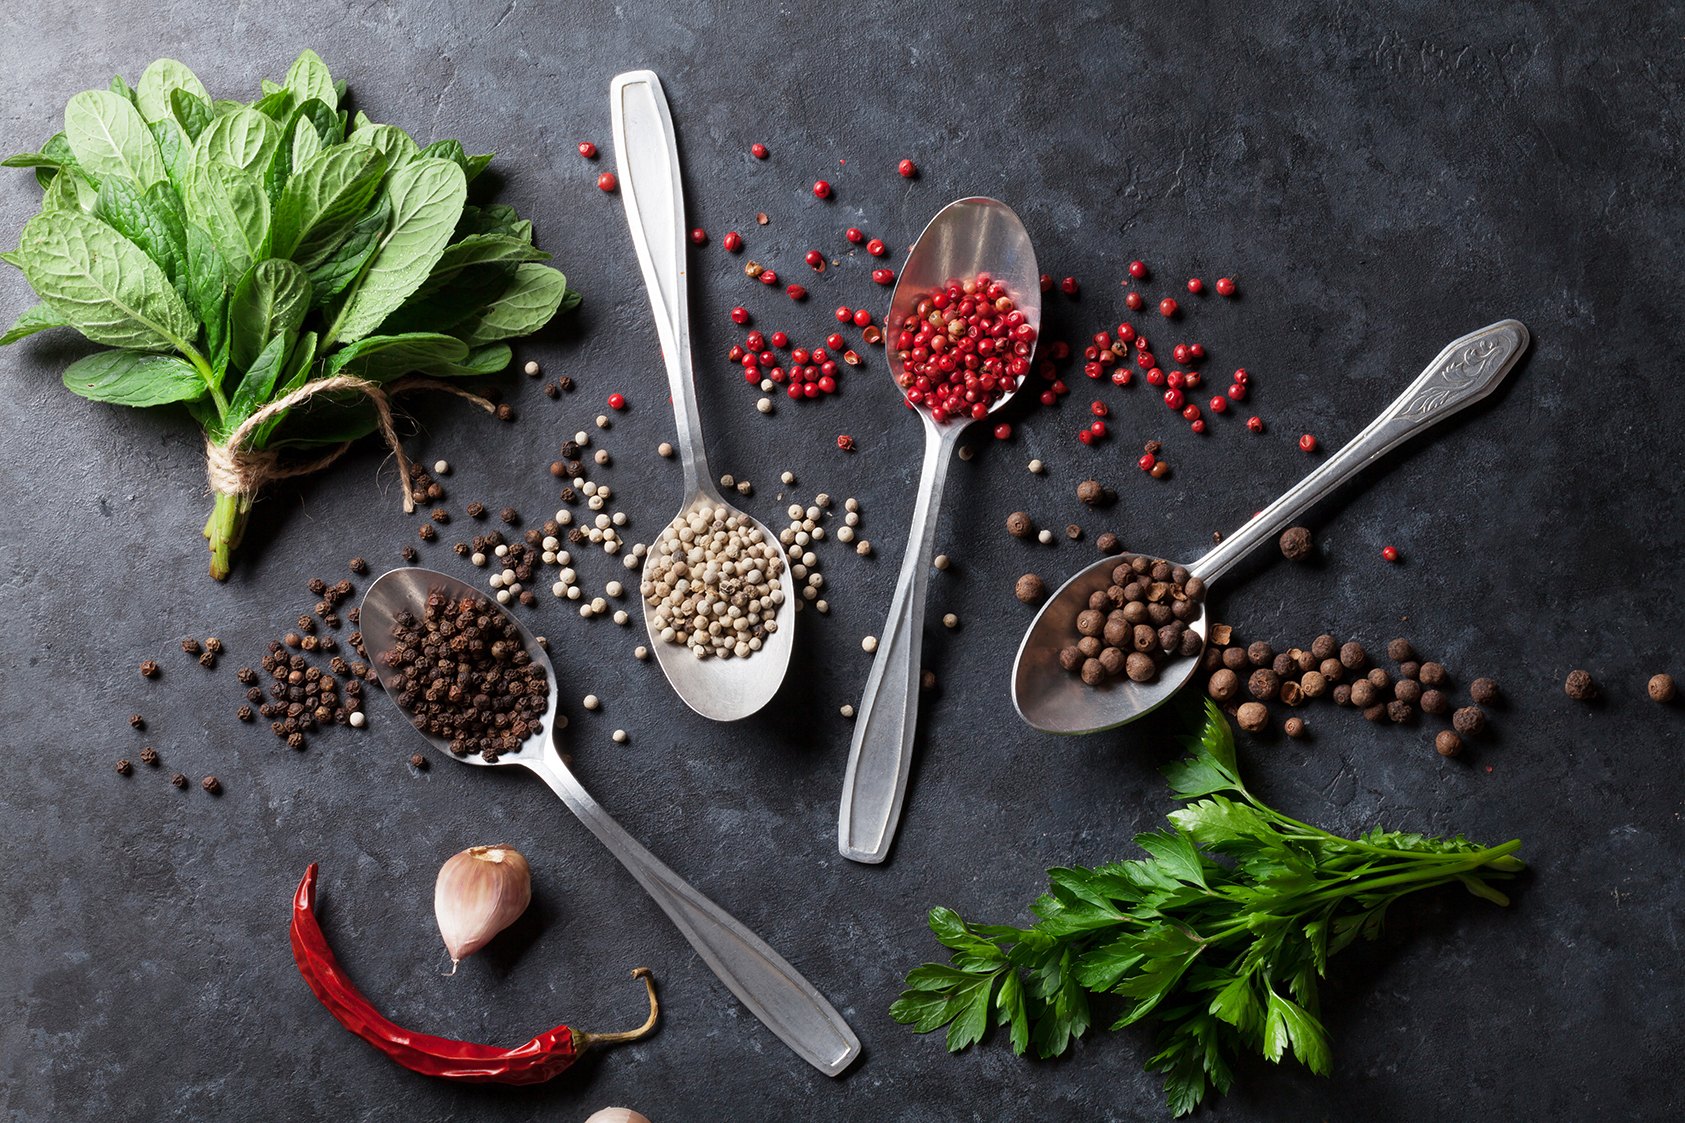 Background image of assorted herbes and spices